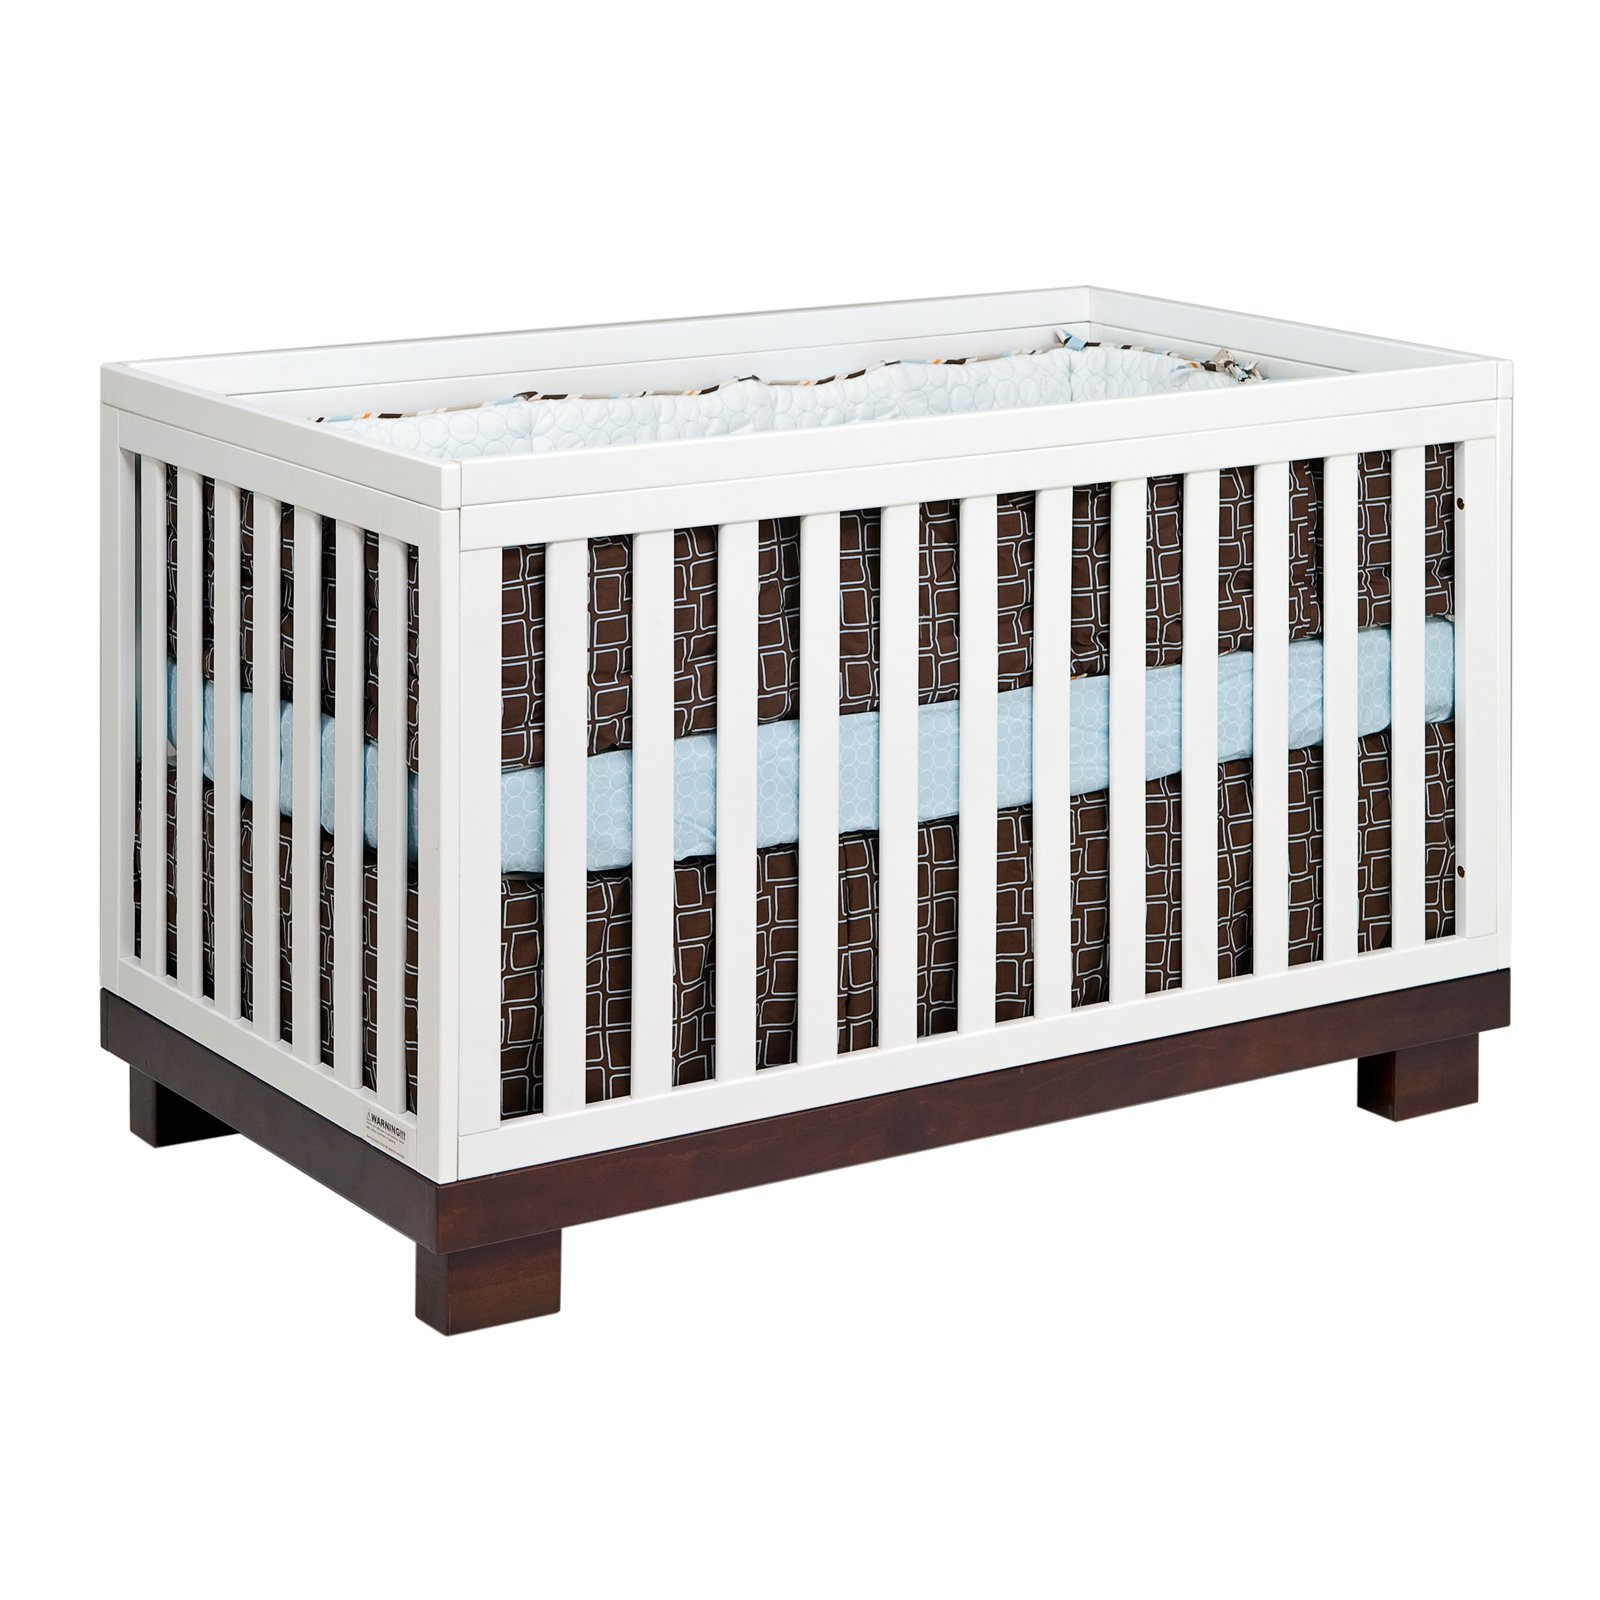 Babyletto Modo 3-in-1 Convertible Crib with Toddler Rail, White by Babyletto